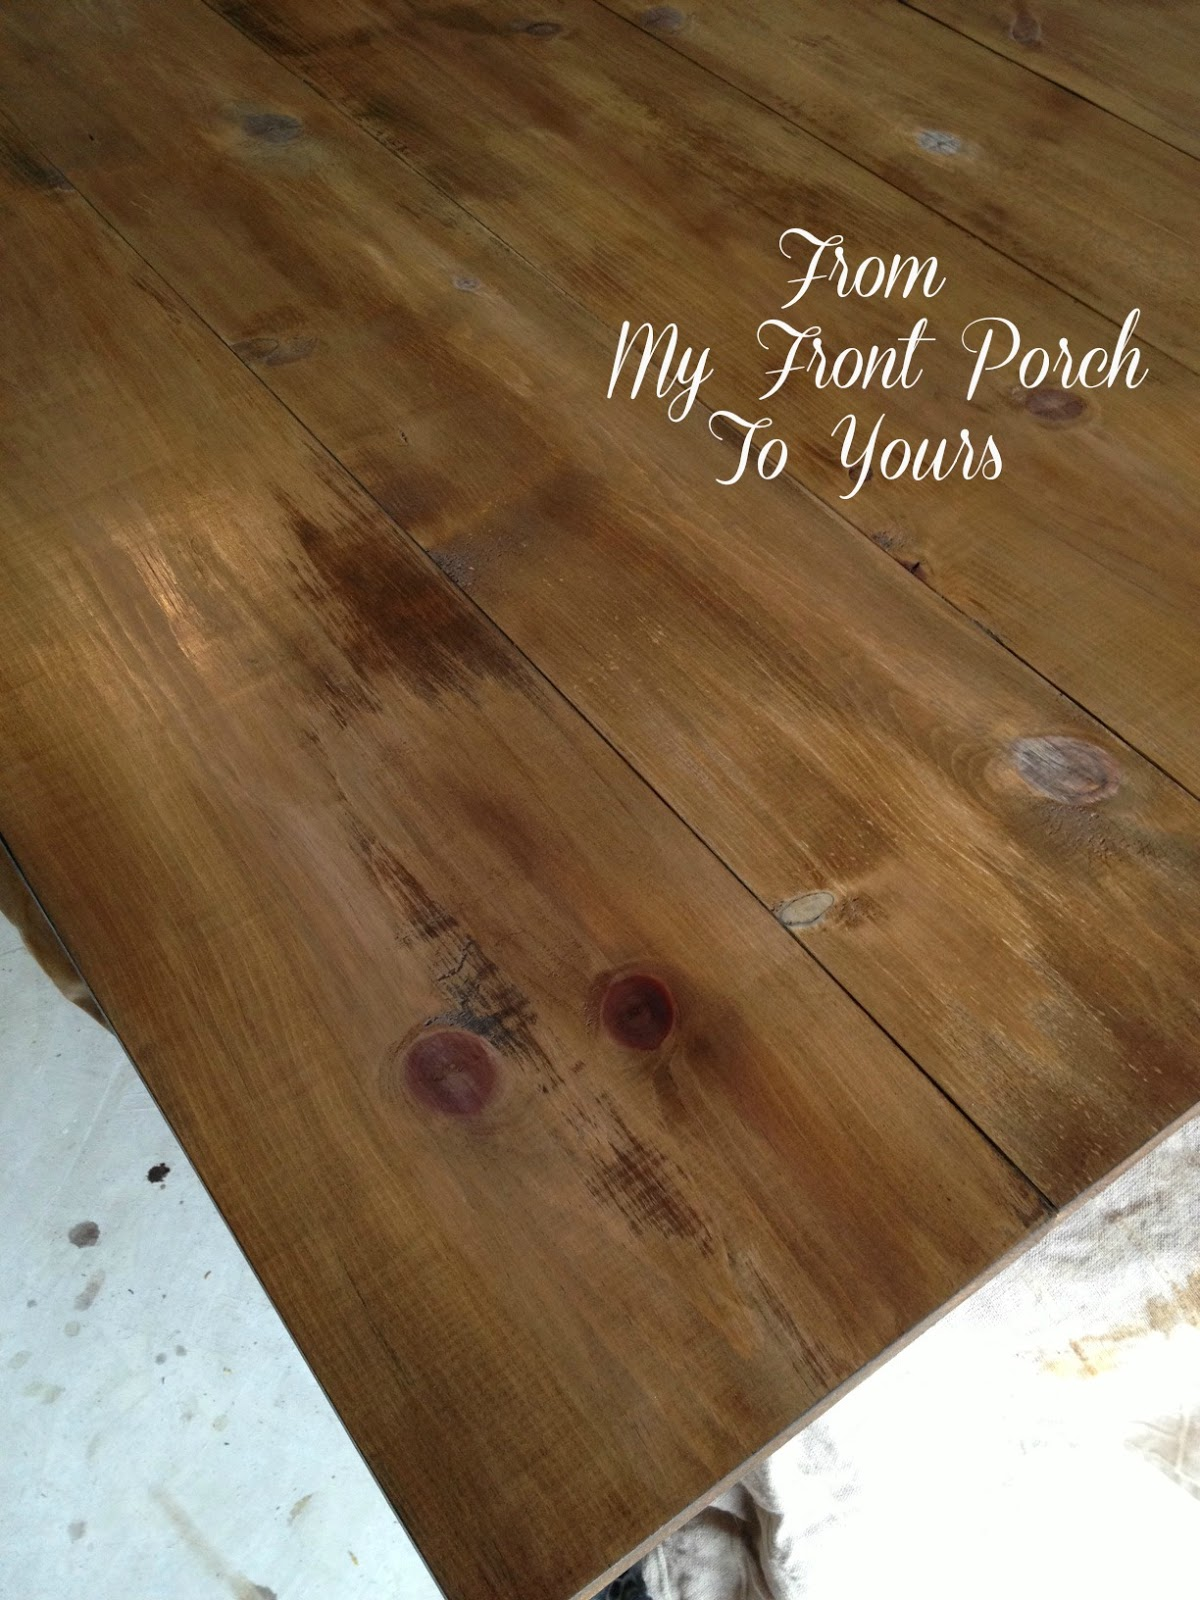 DIY Wood Planked Table Top  Farmhouse DIning Room Table  From My Front  Porch To